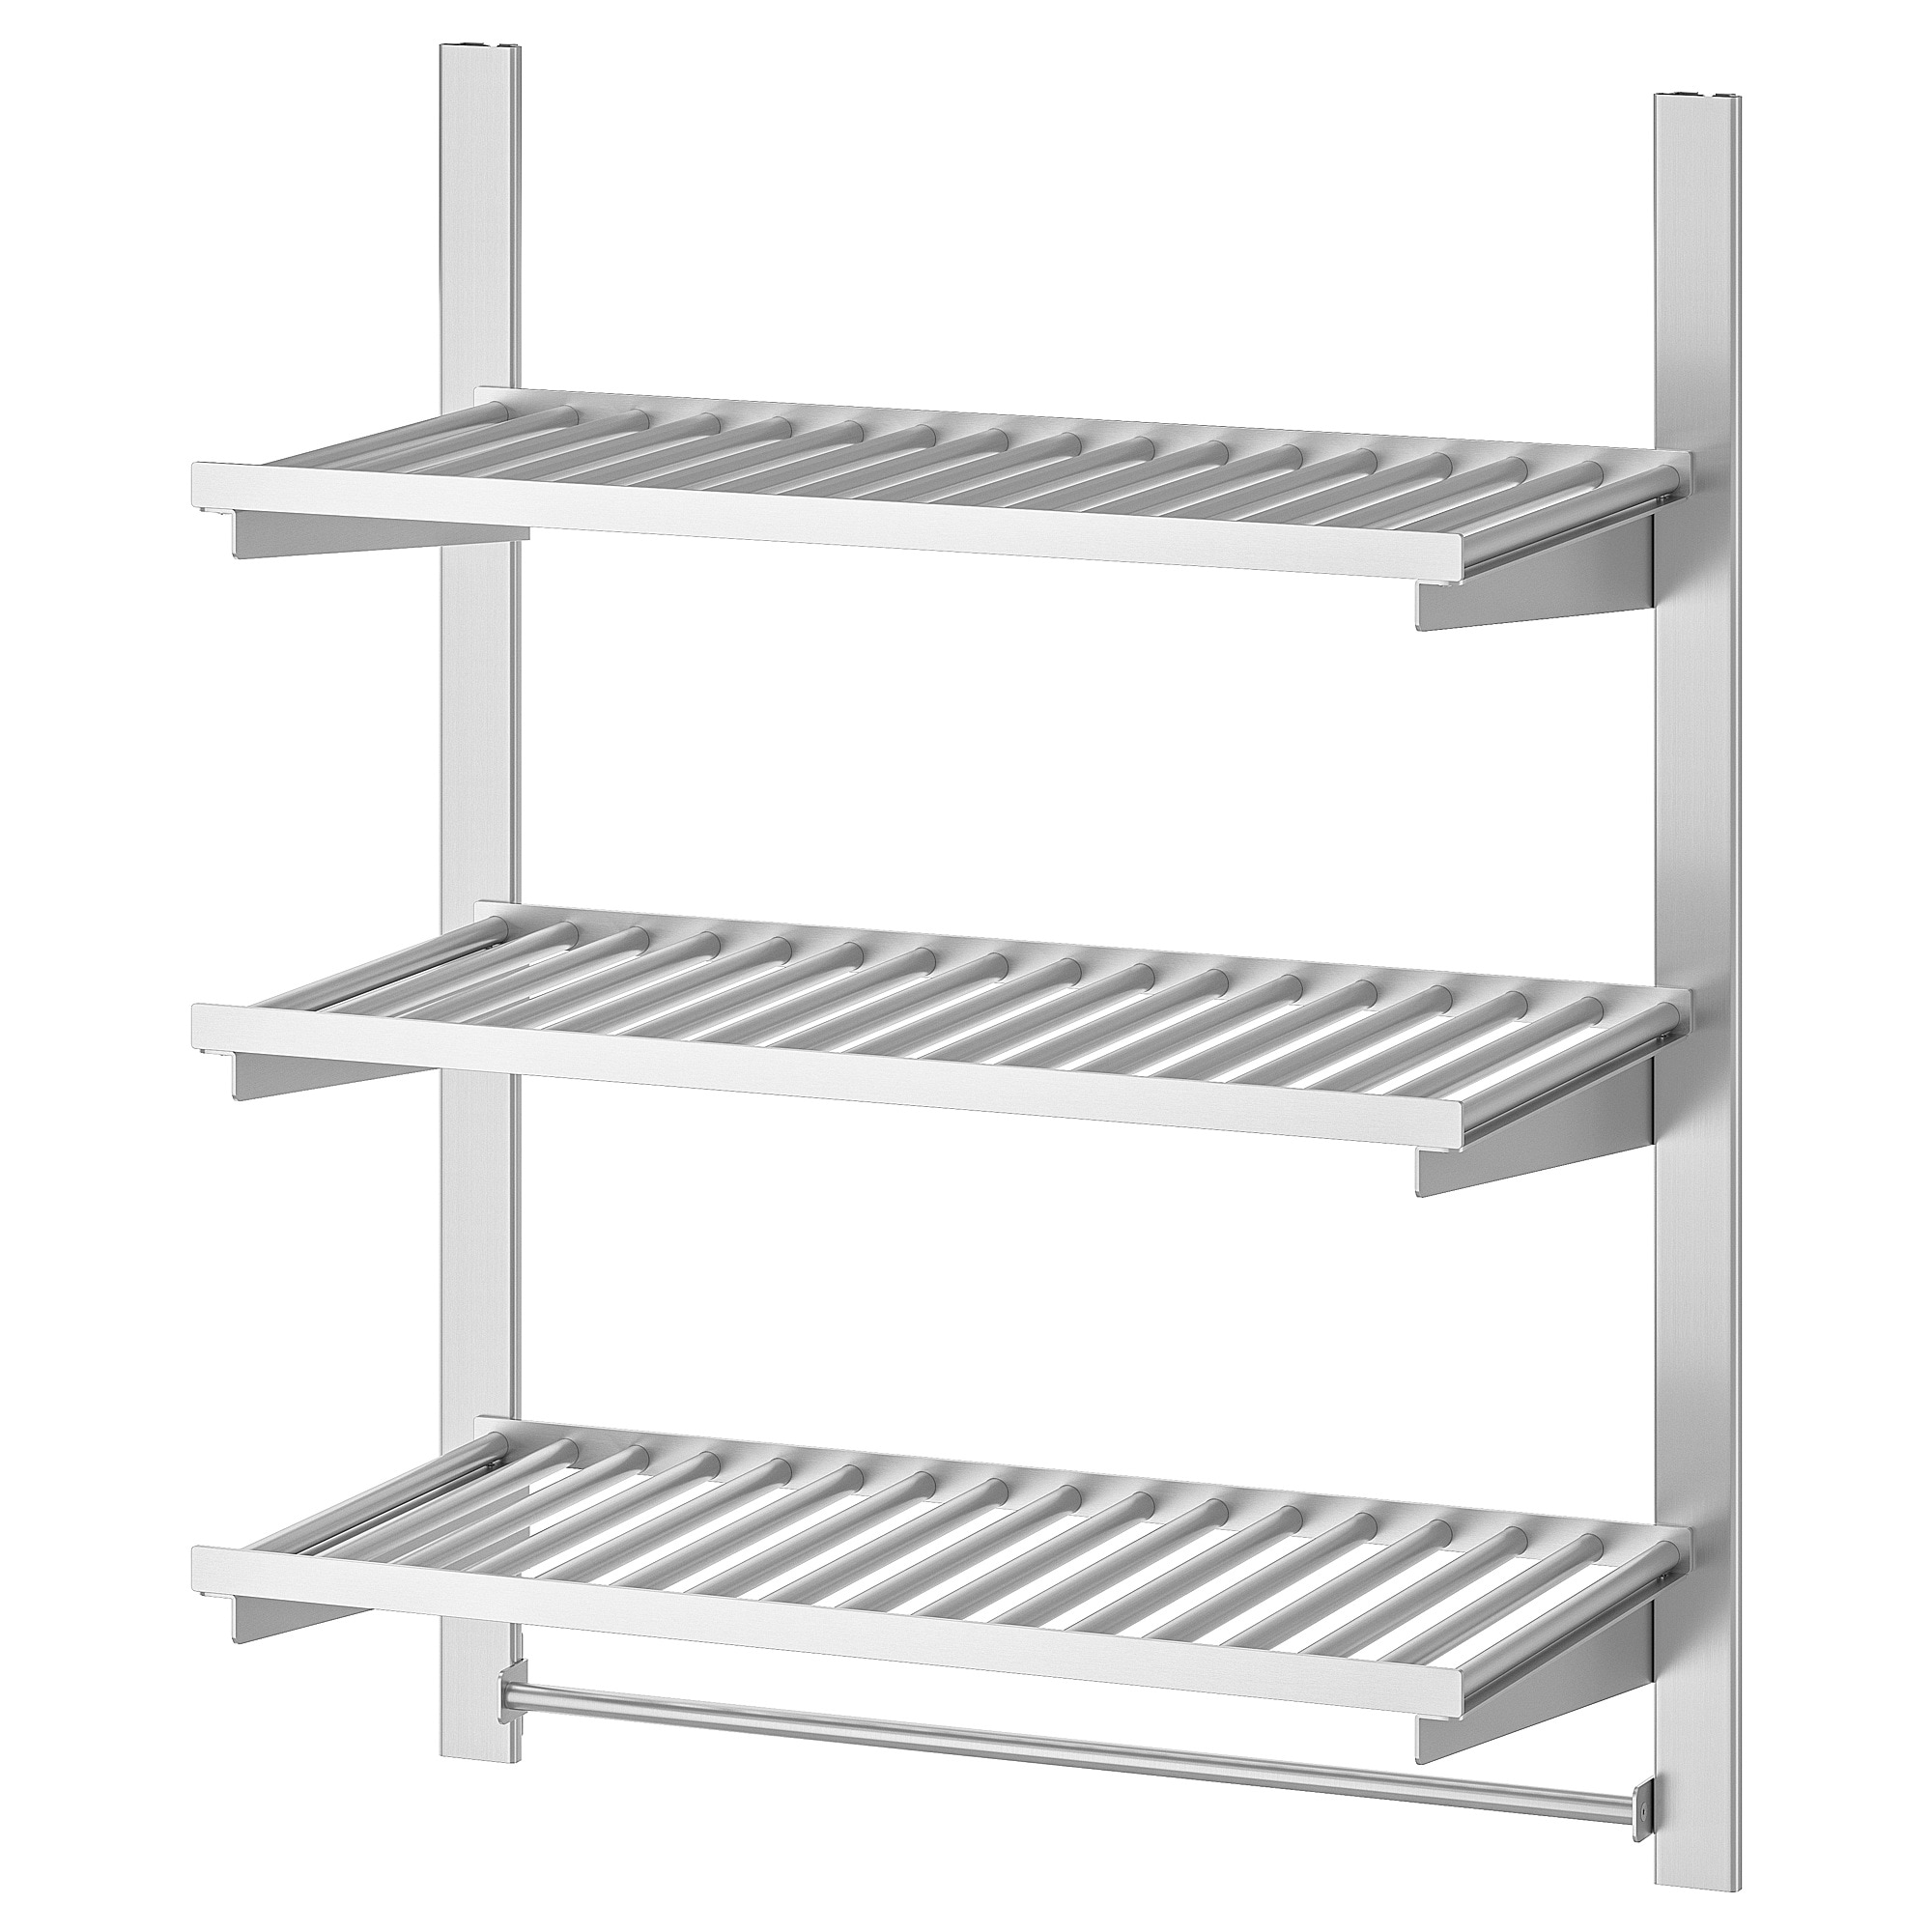 Suspension Rail W Shelves And Rail Kungsfors Stainless Steel